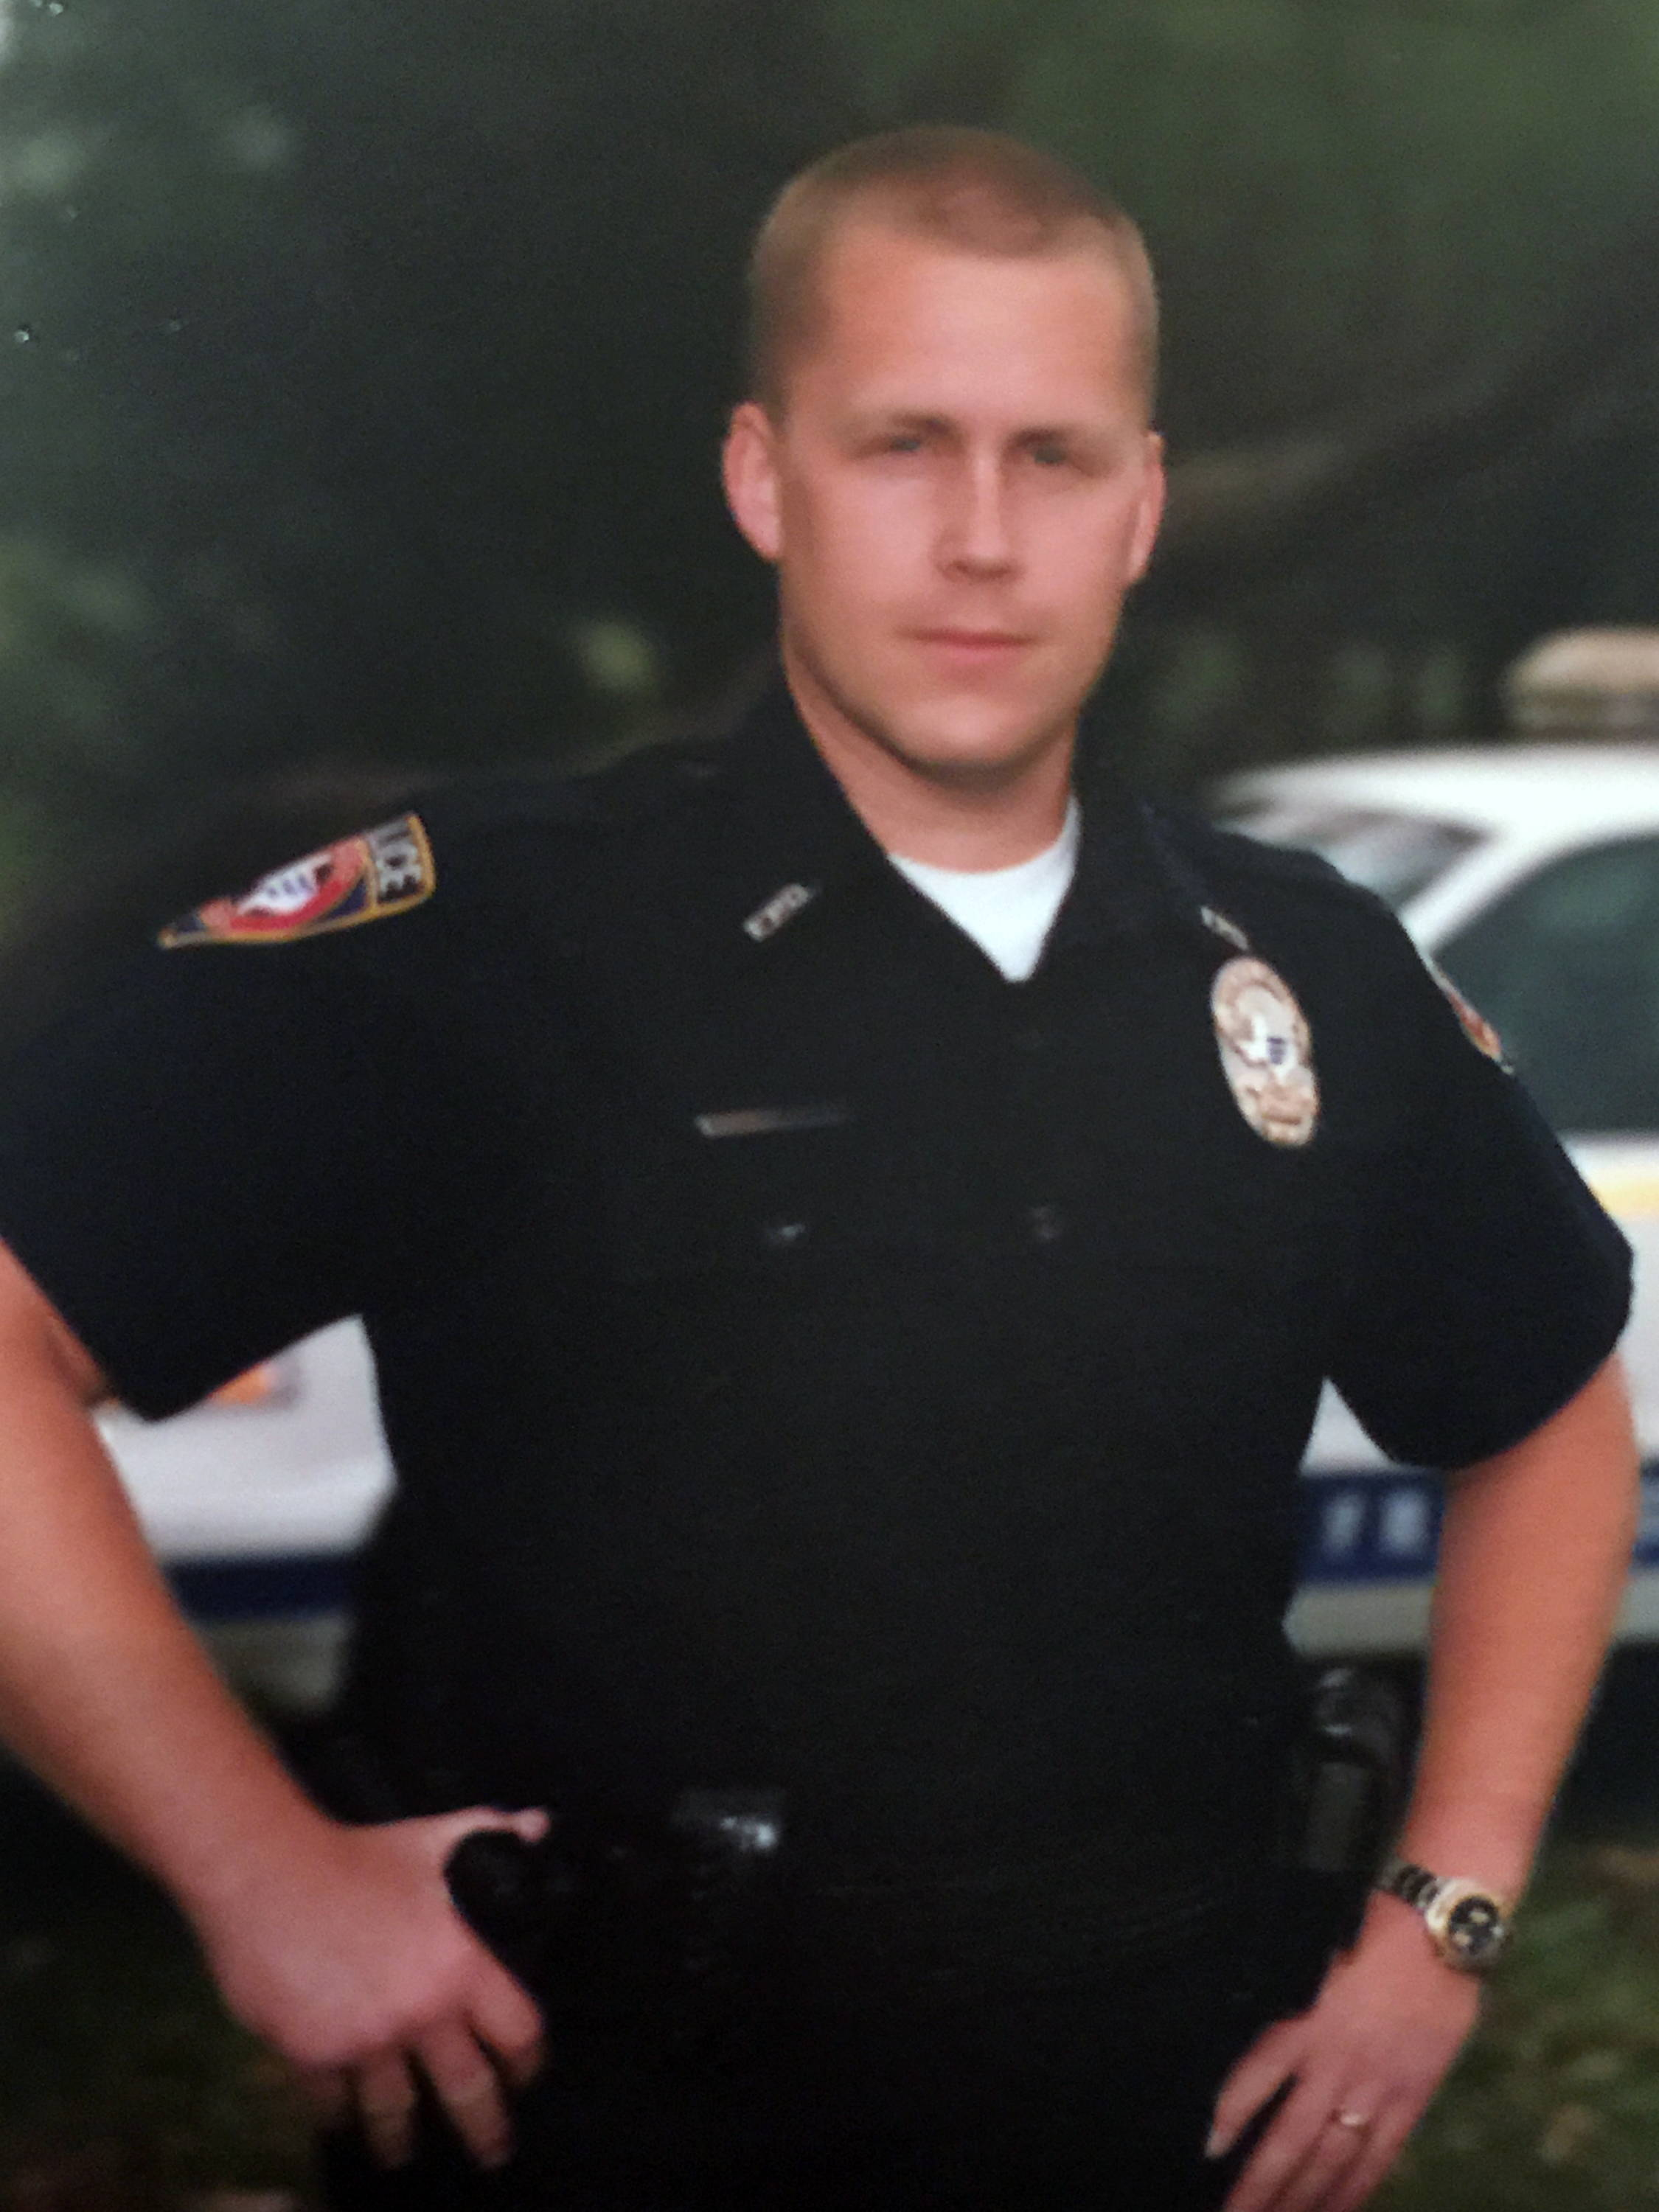 police officer ron lyons back in the early 2000s